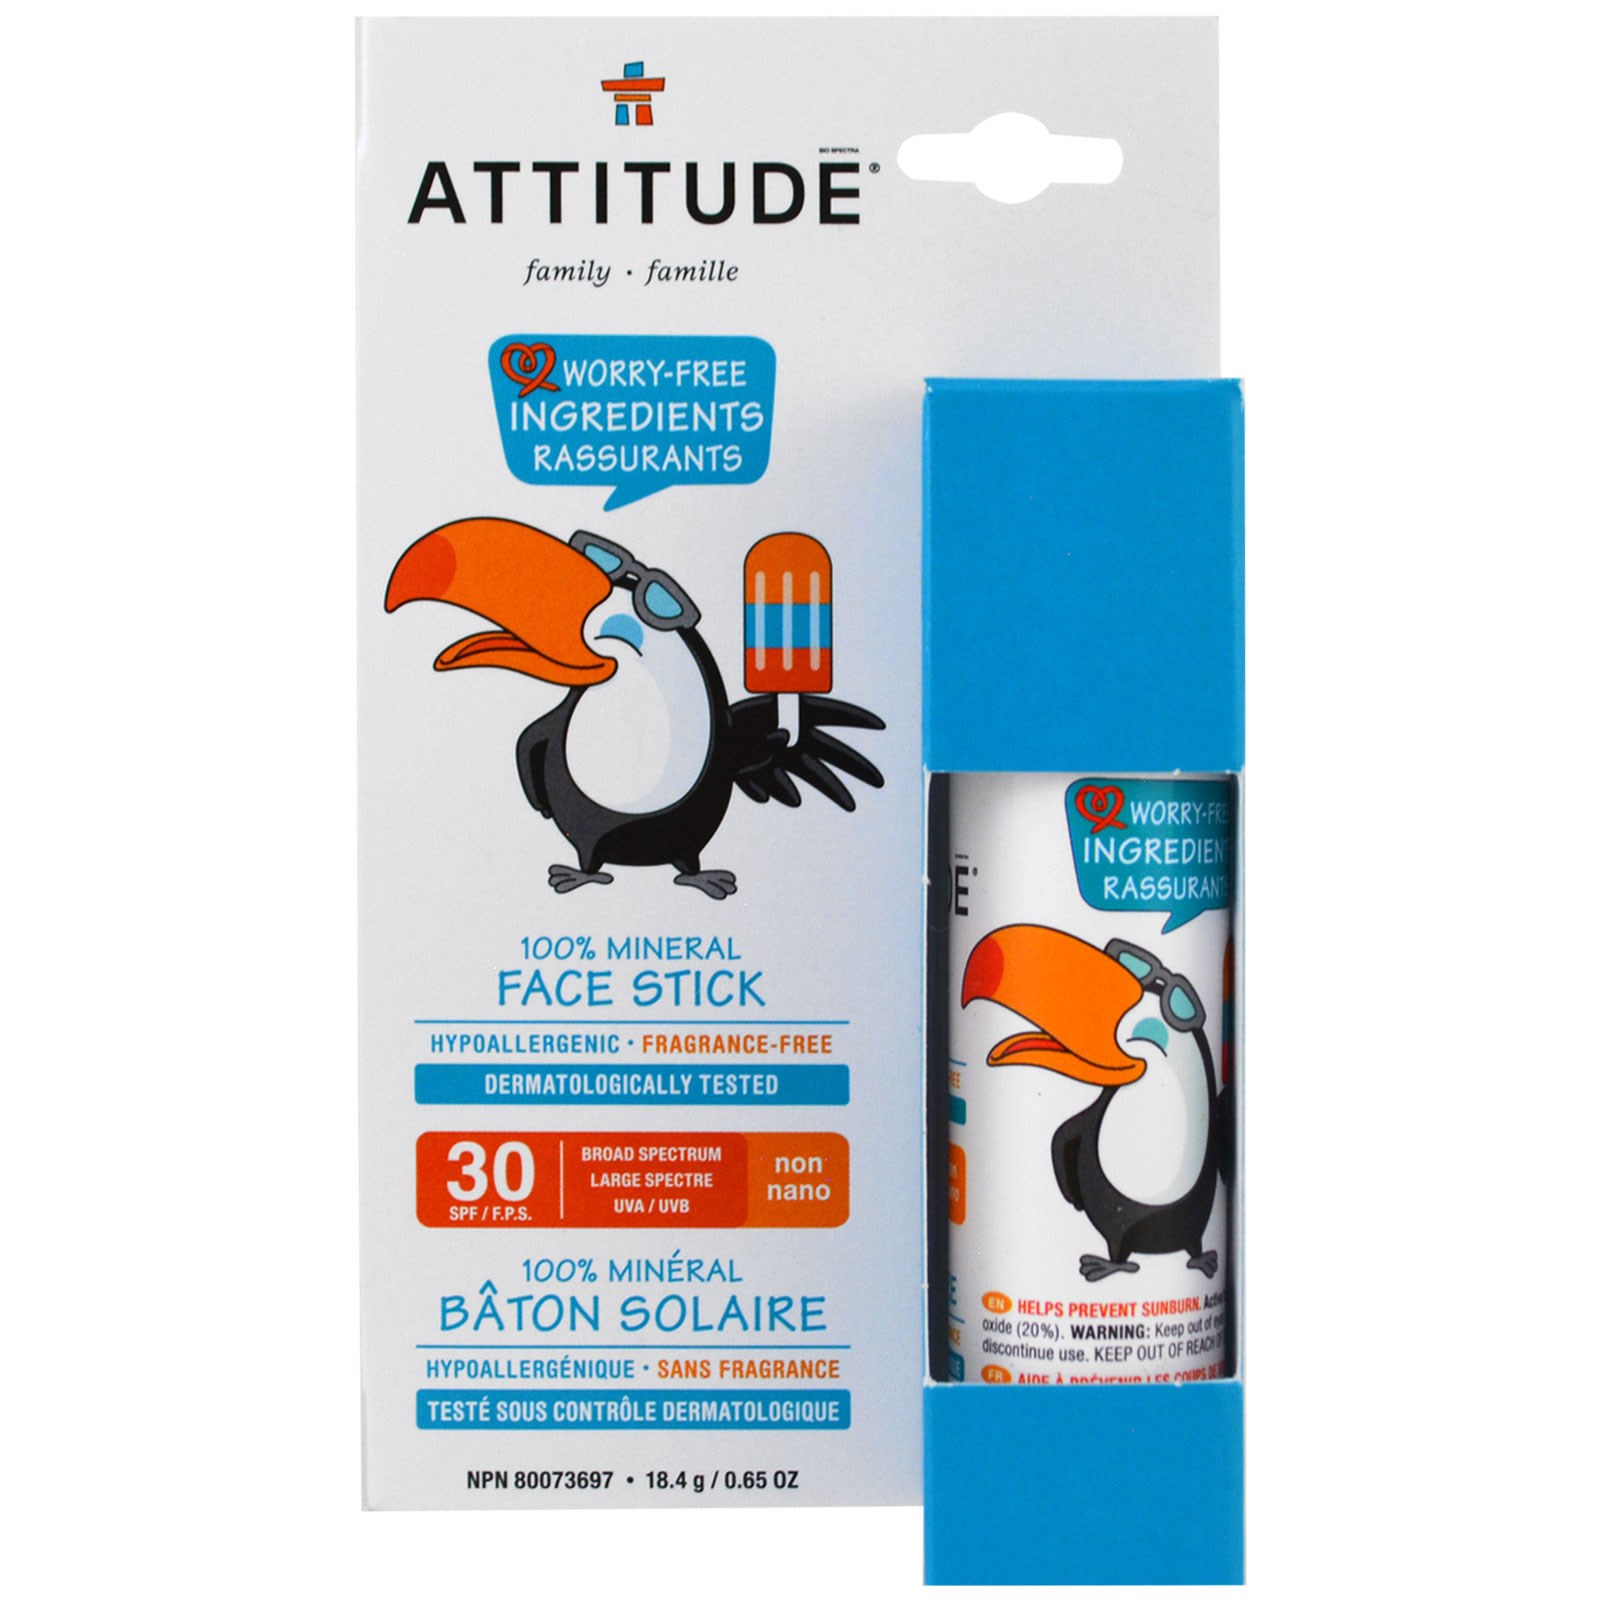 ATTITUDE, Family, 100% Mineral Face Stick, SPF 30, Fragrance Free, 0.65 oz (18.4 g)